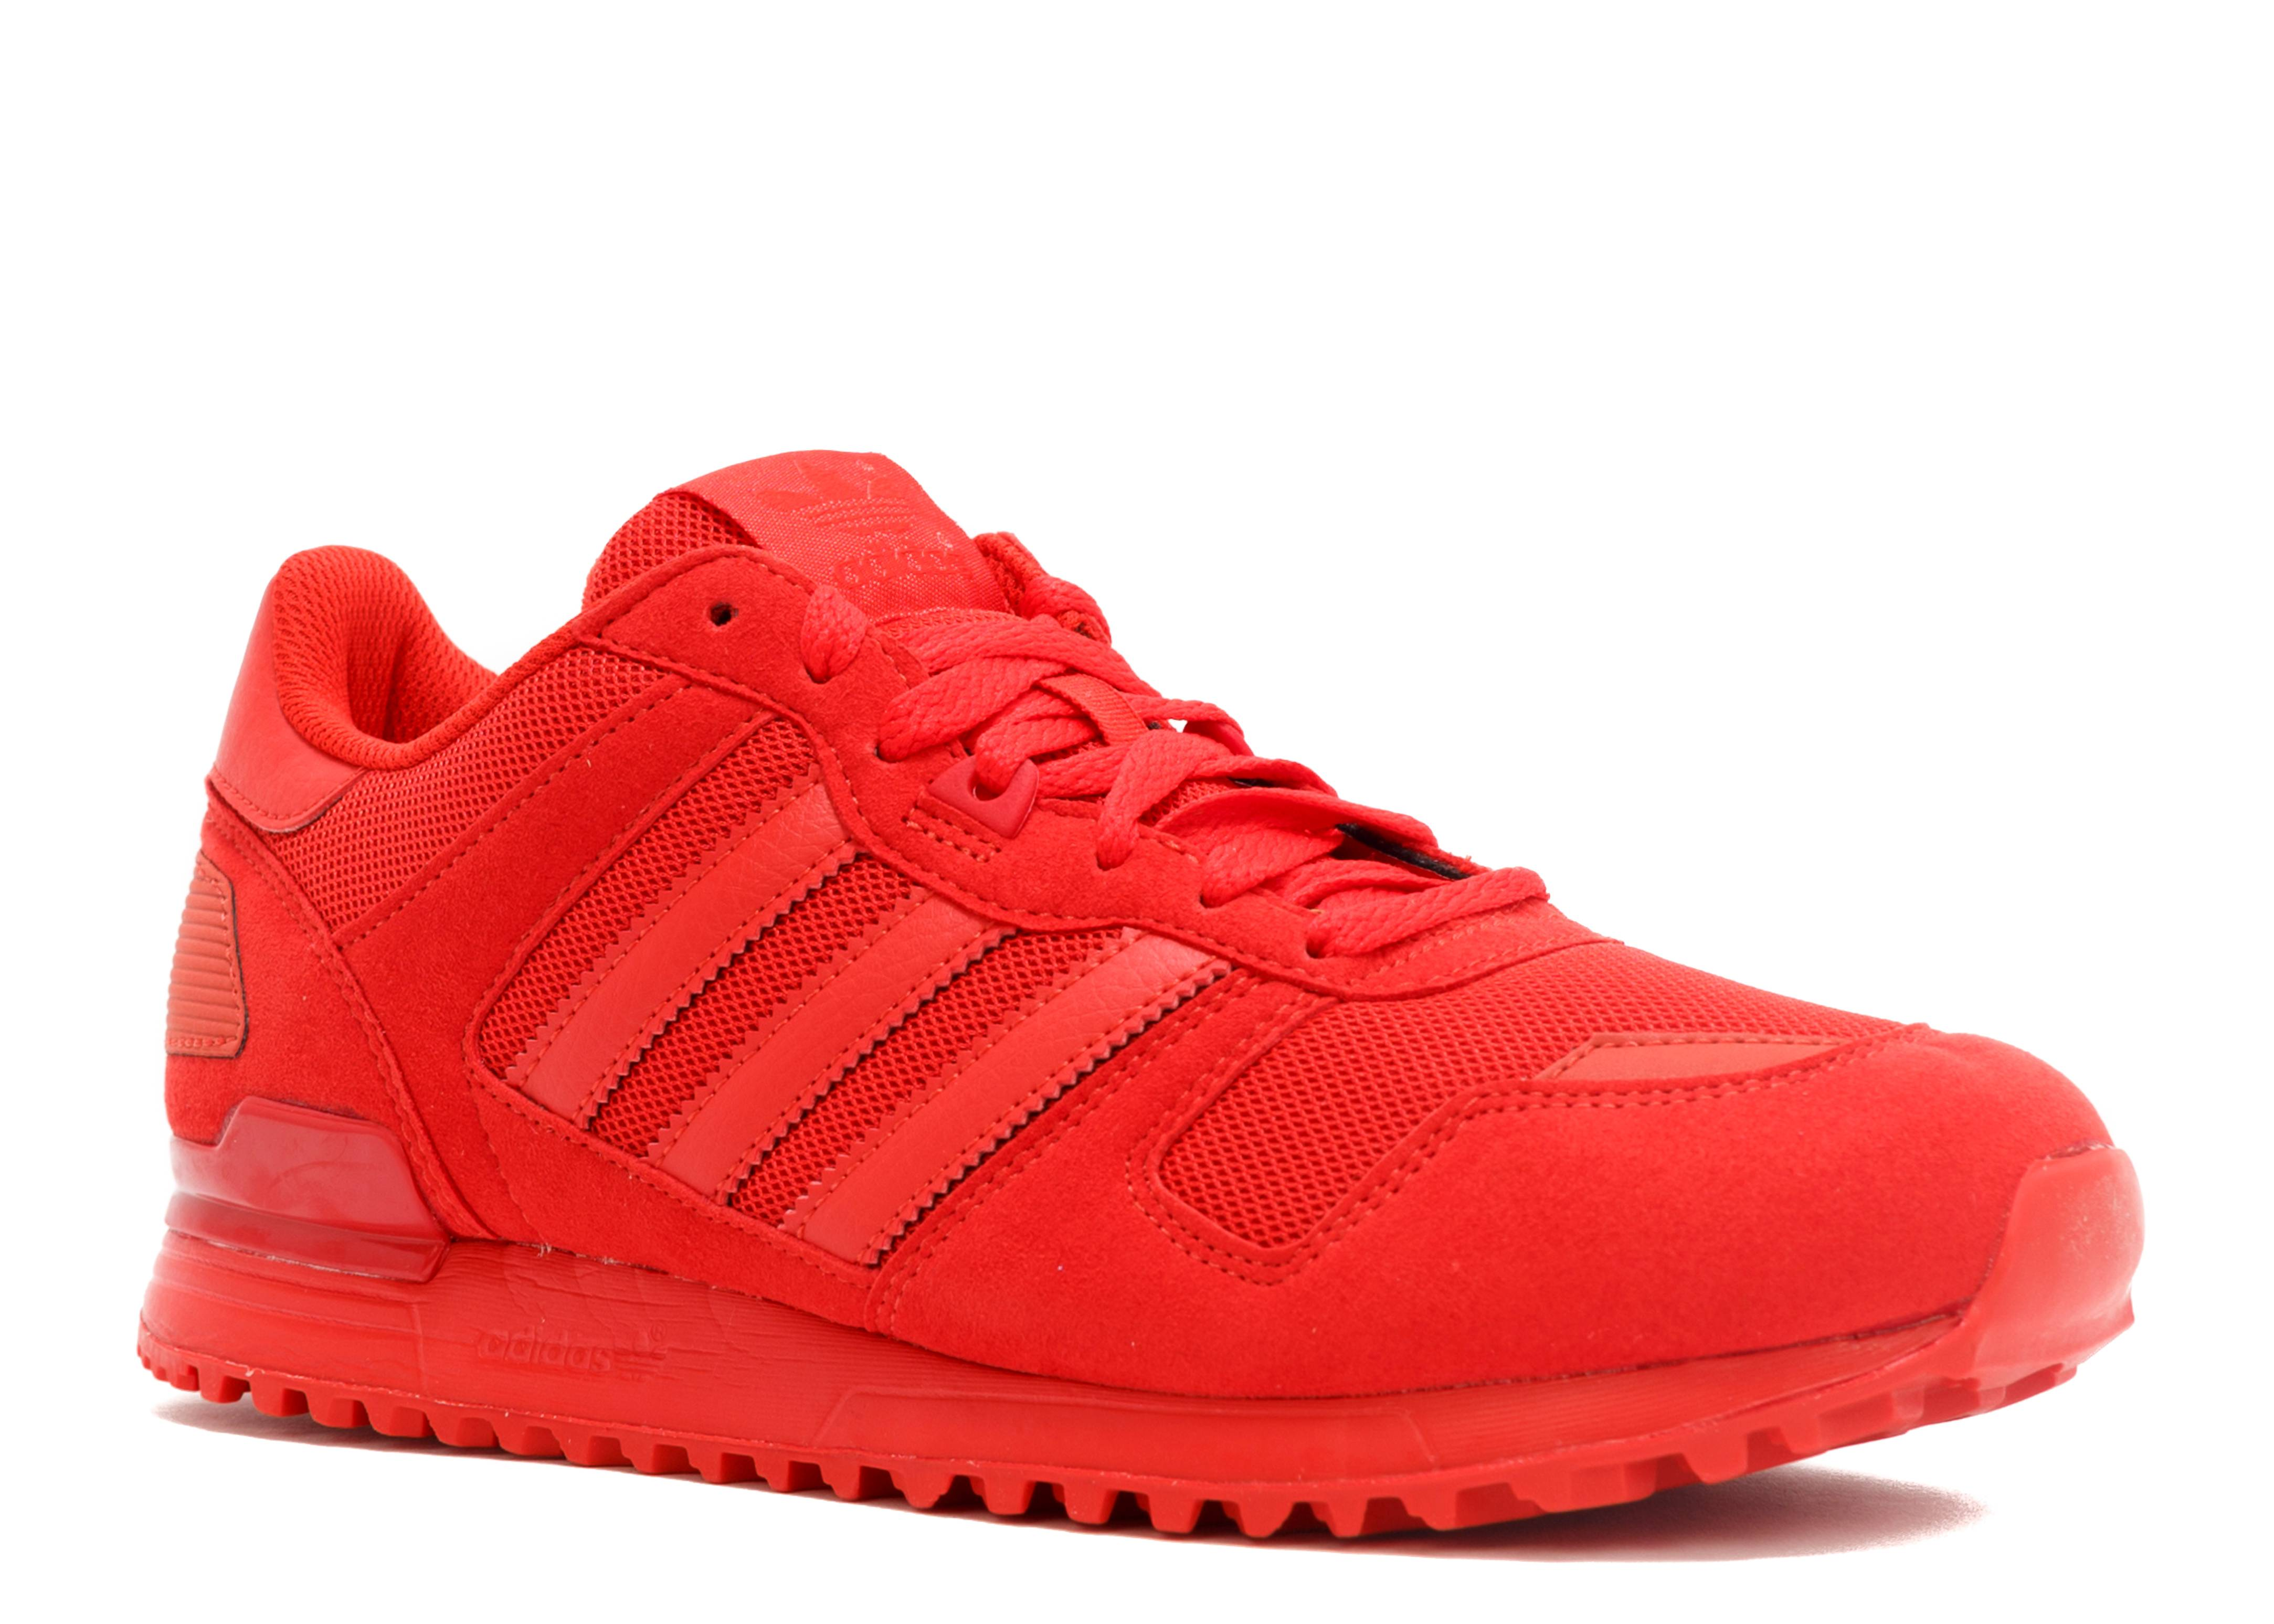 huge discount 2c97f 1ff3f Zx 700 - Adidas - s79188 - red/red/red | Flight Club